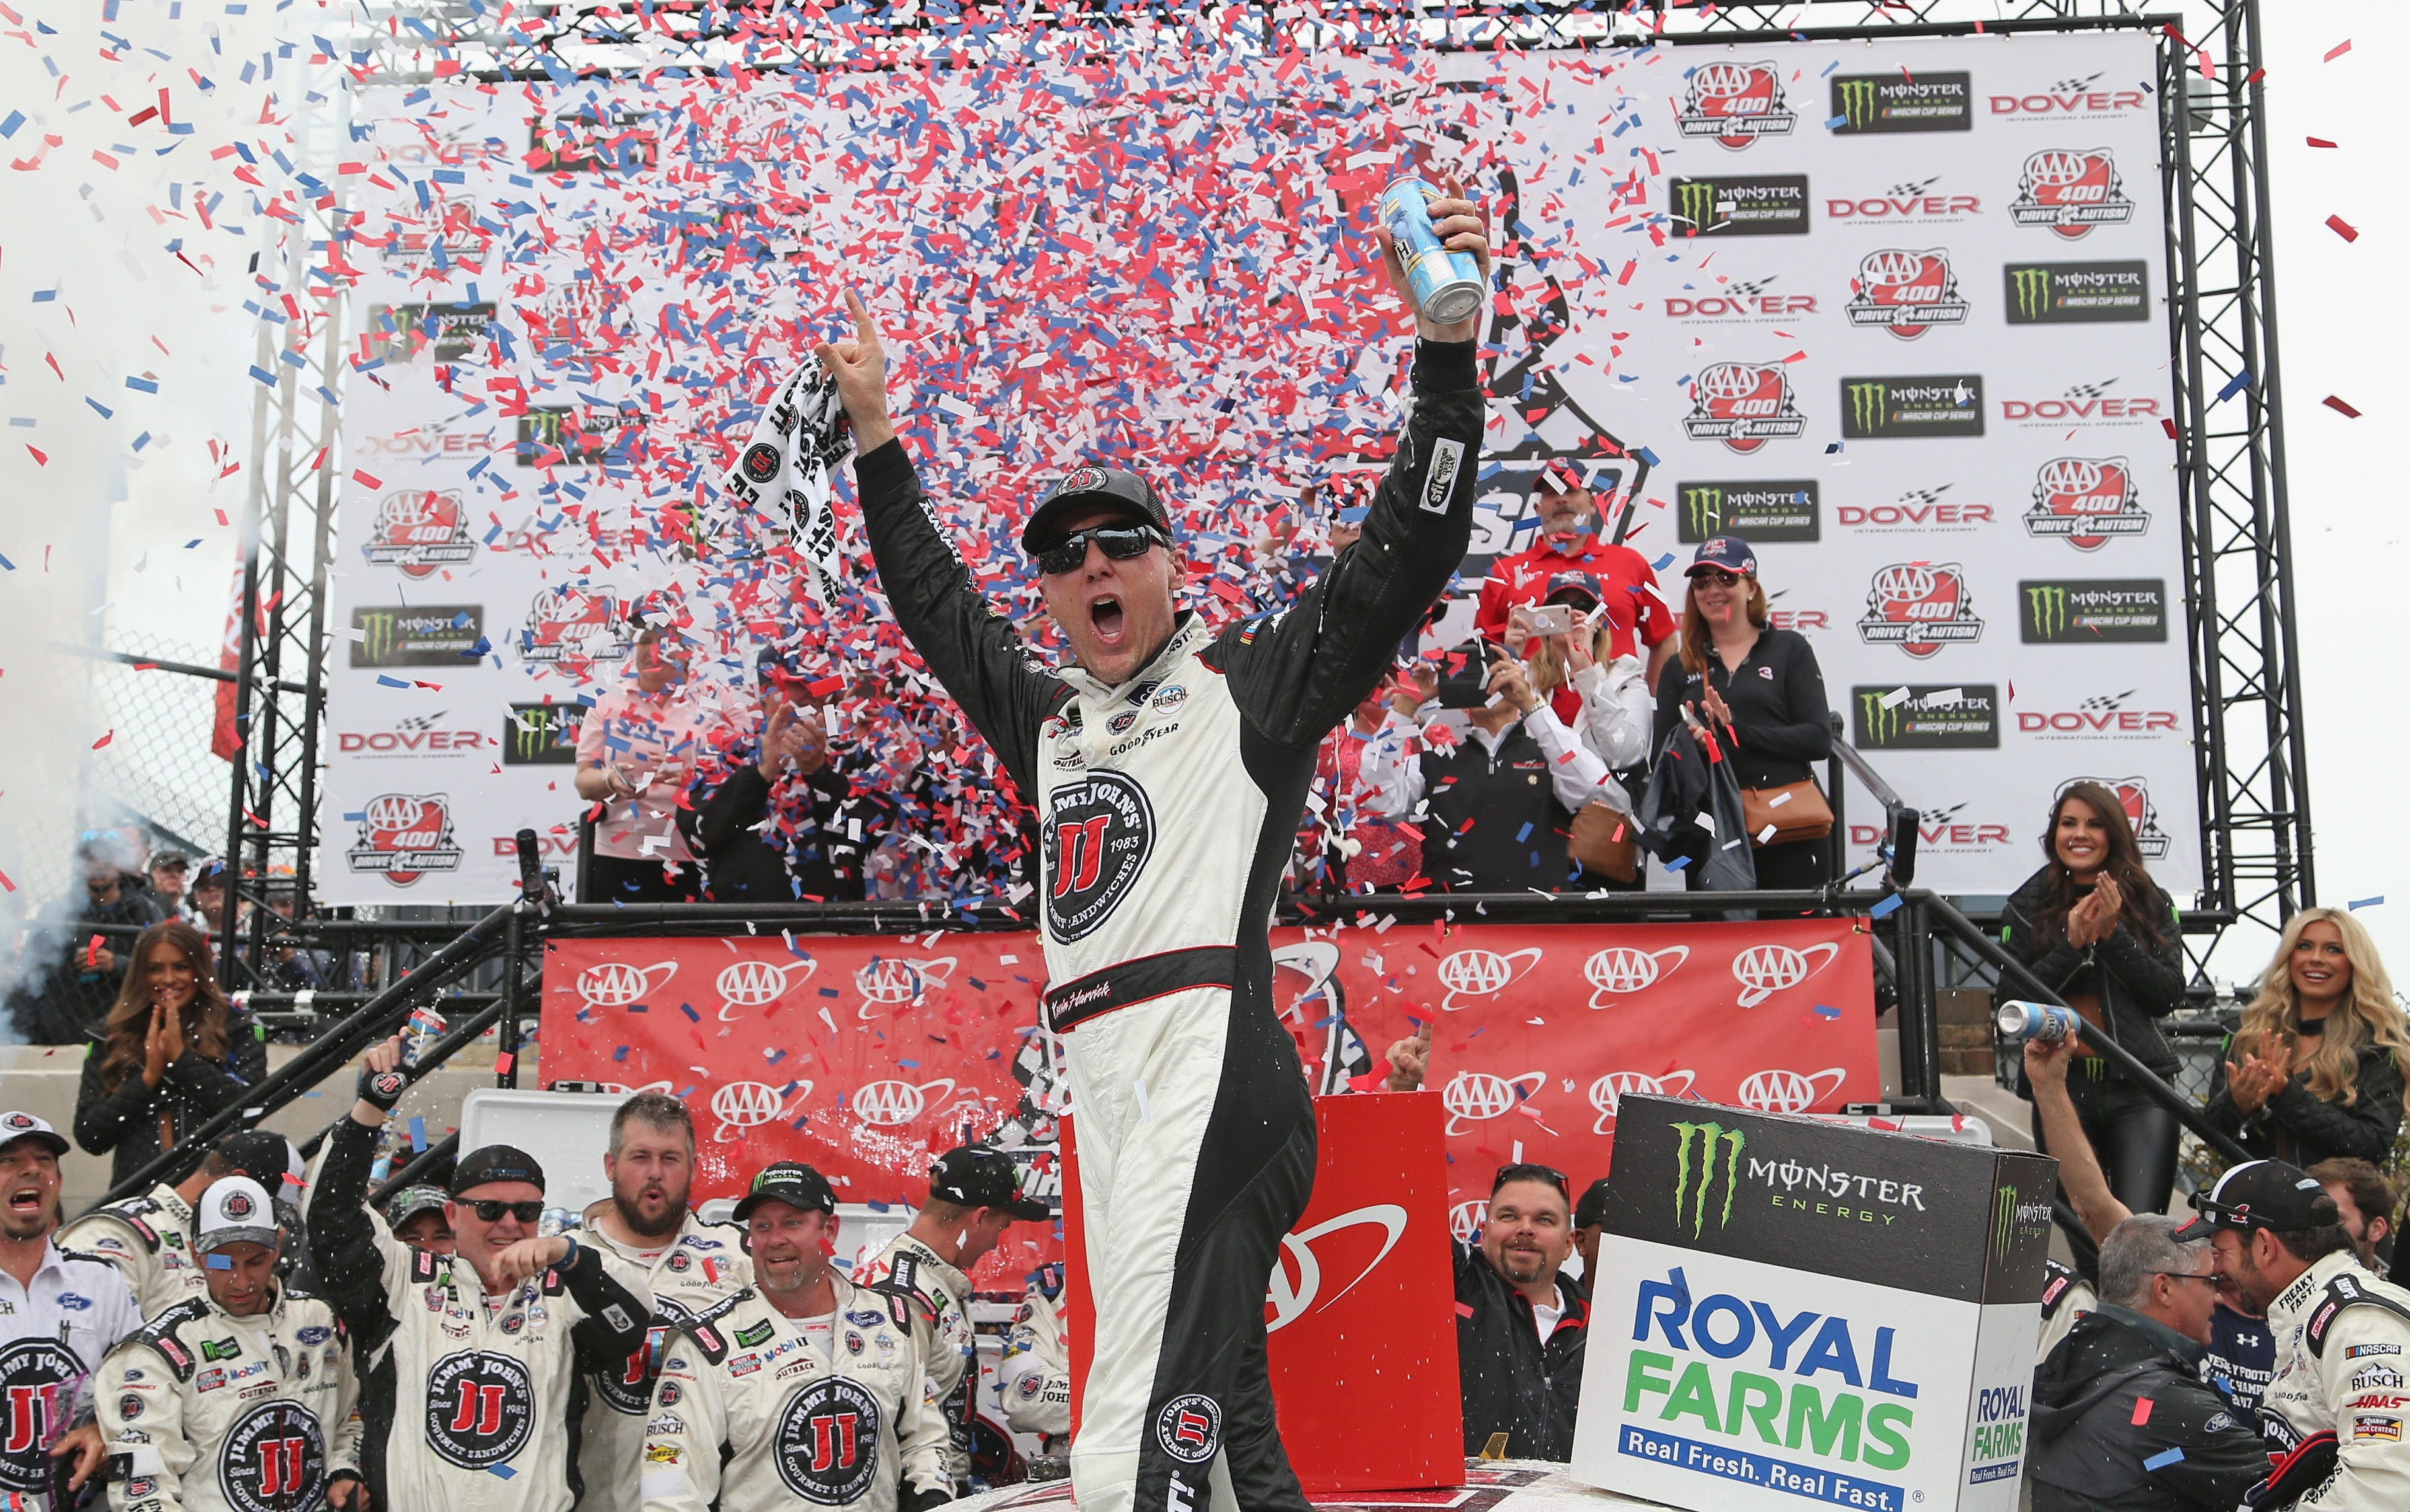 Kevin Harvick in victory lane at Dover International Speedway